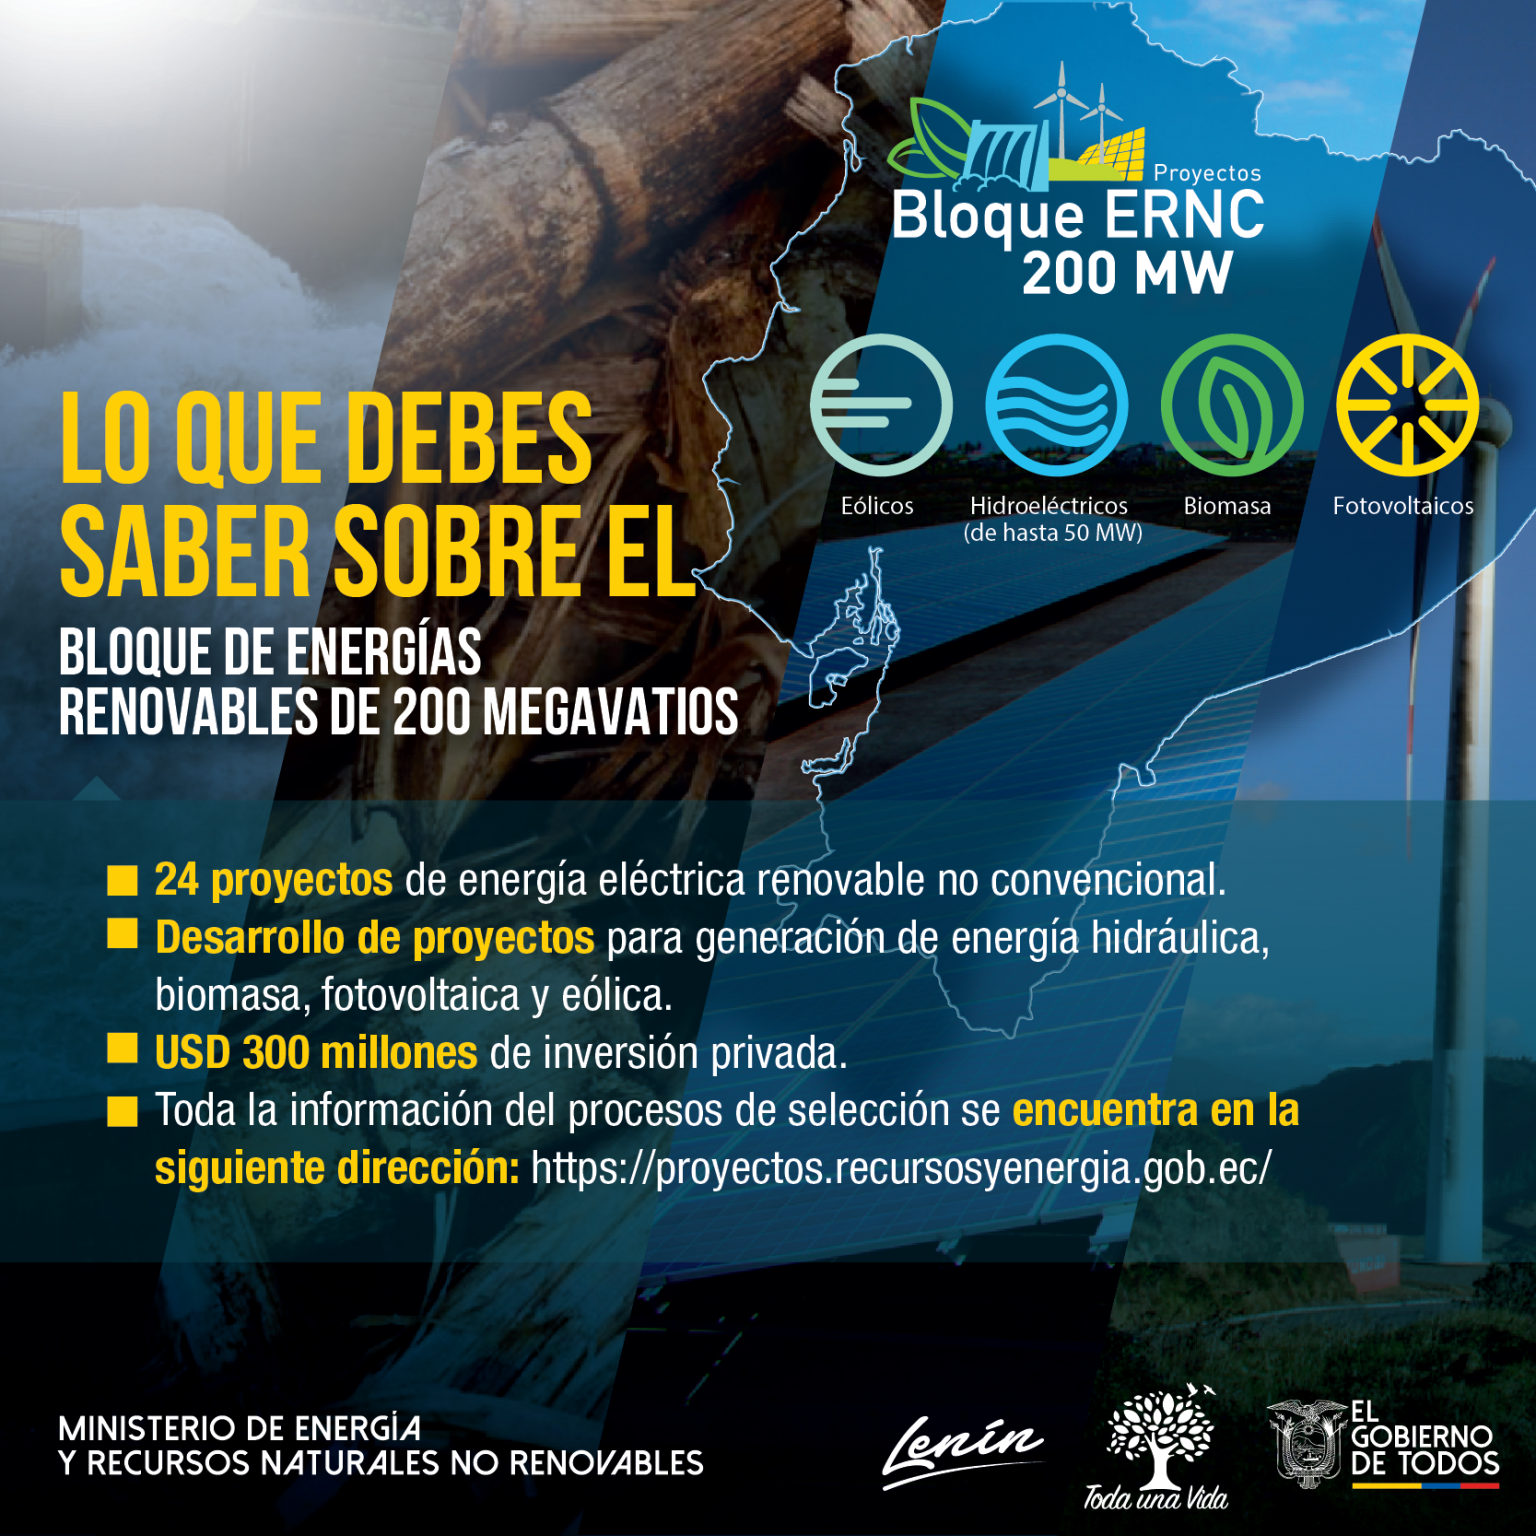 Ecuador offers the private sector the development of a 200 megawatt renewable energy block